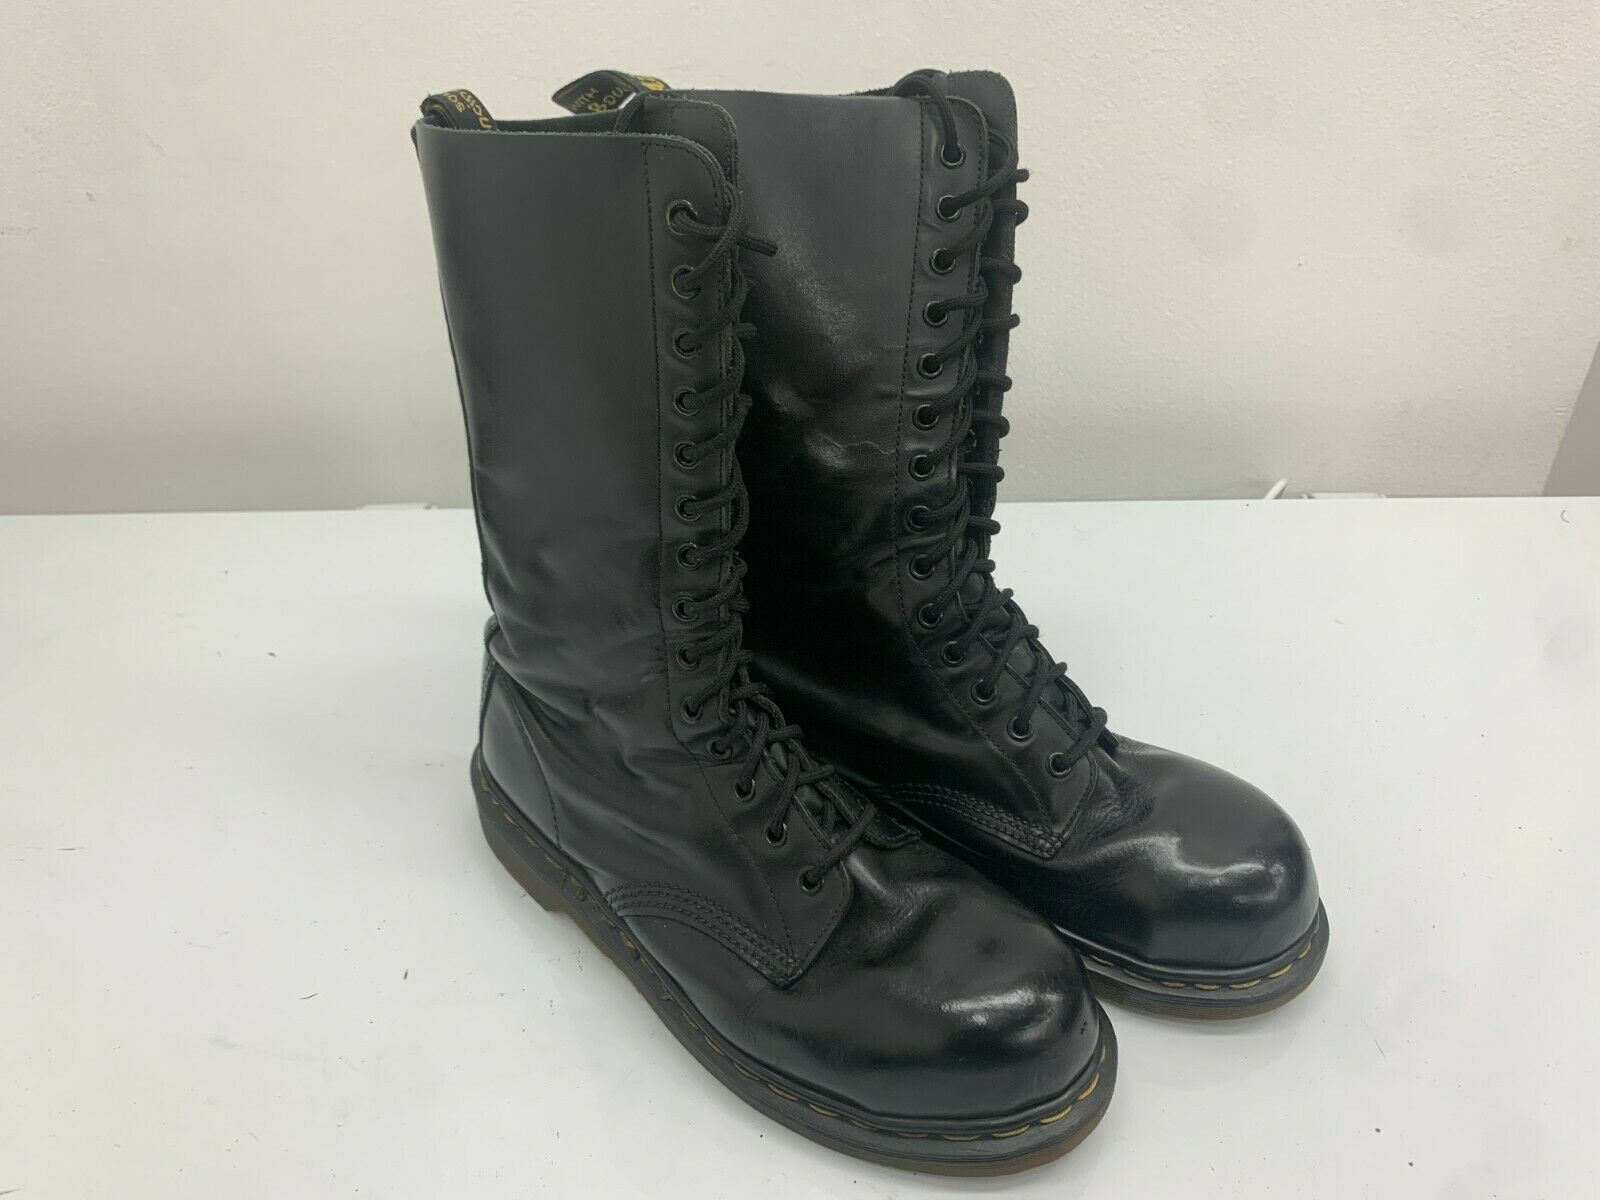 Dr Martens Boots 14 Eyelets Black Leather, Size 8UK, Made In England. Steel Toe